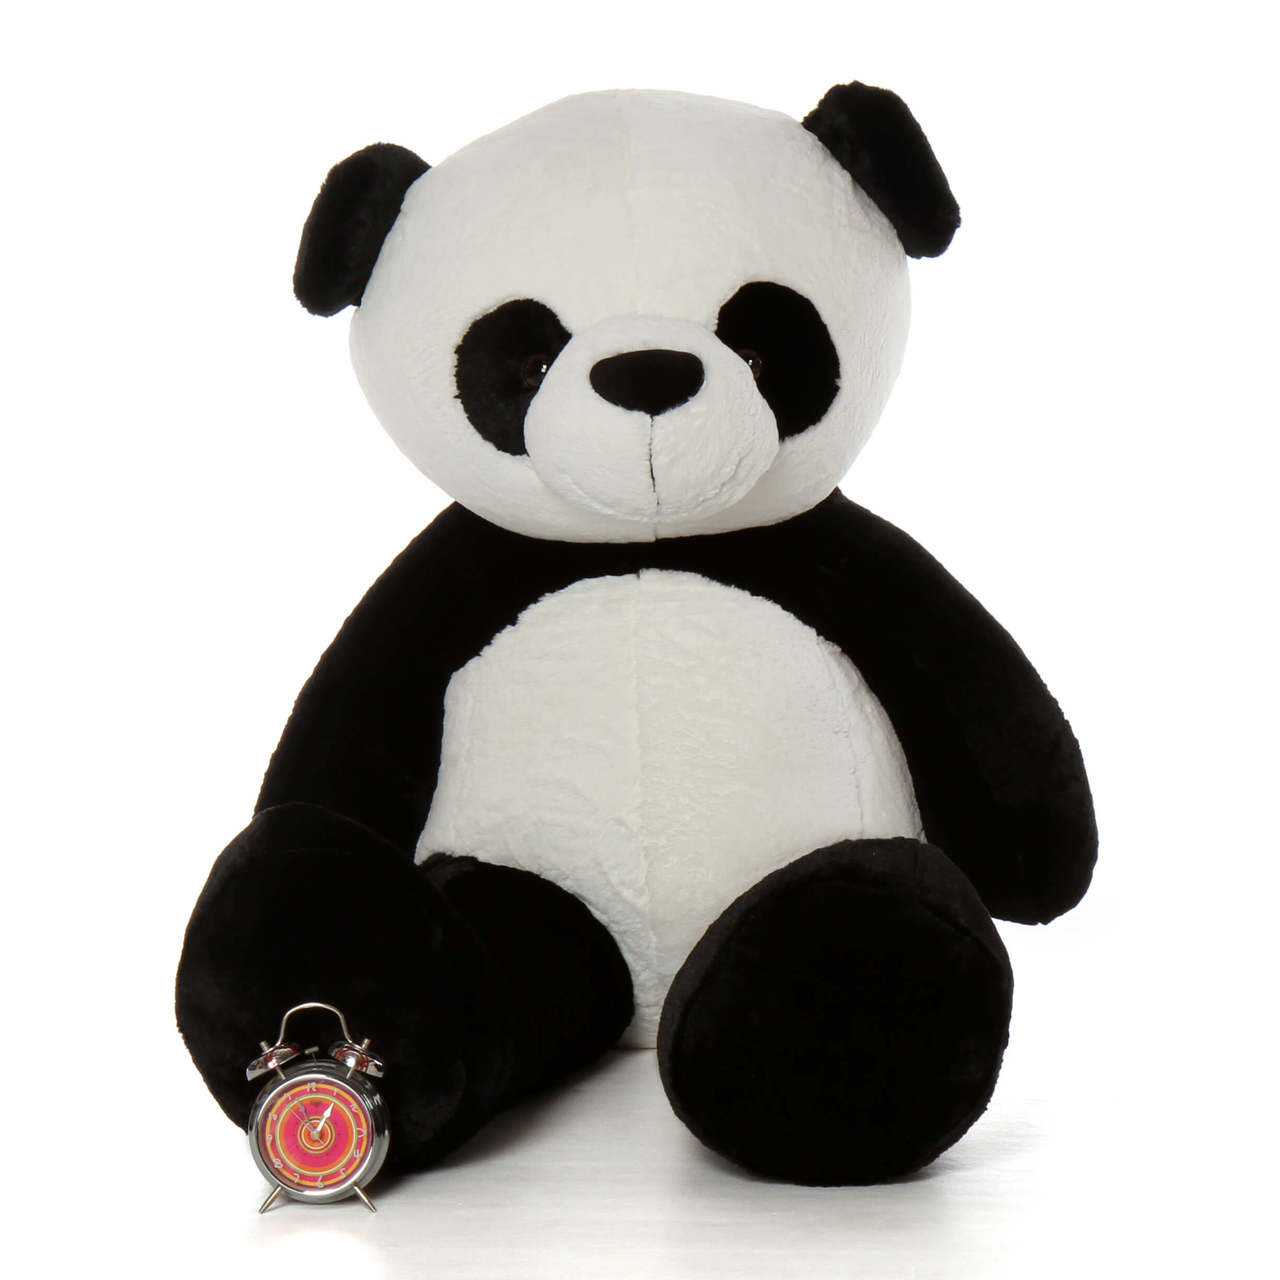 Huge 5 Foot Life Size Stuffed Panda Teddy Bear